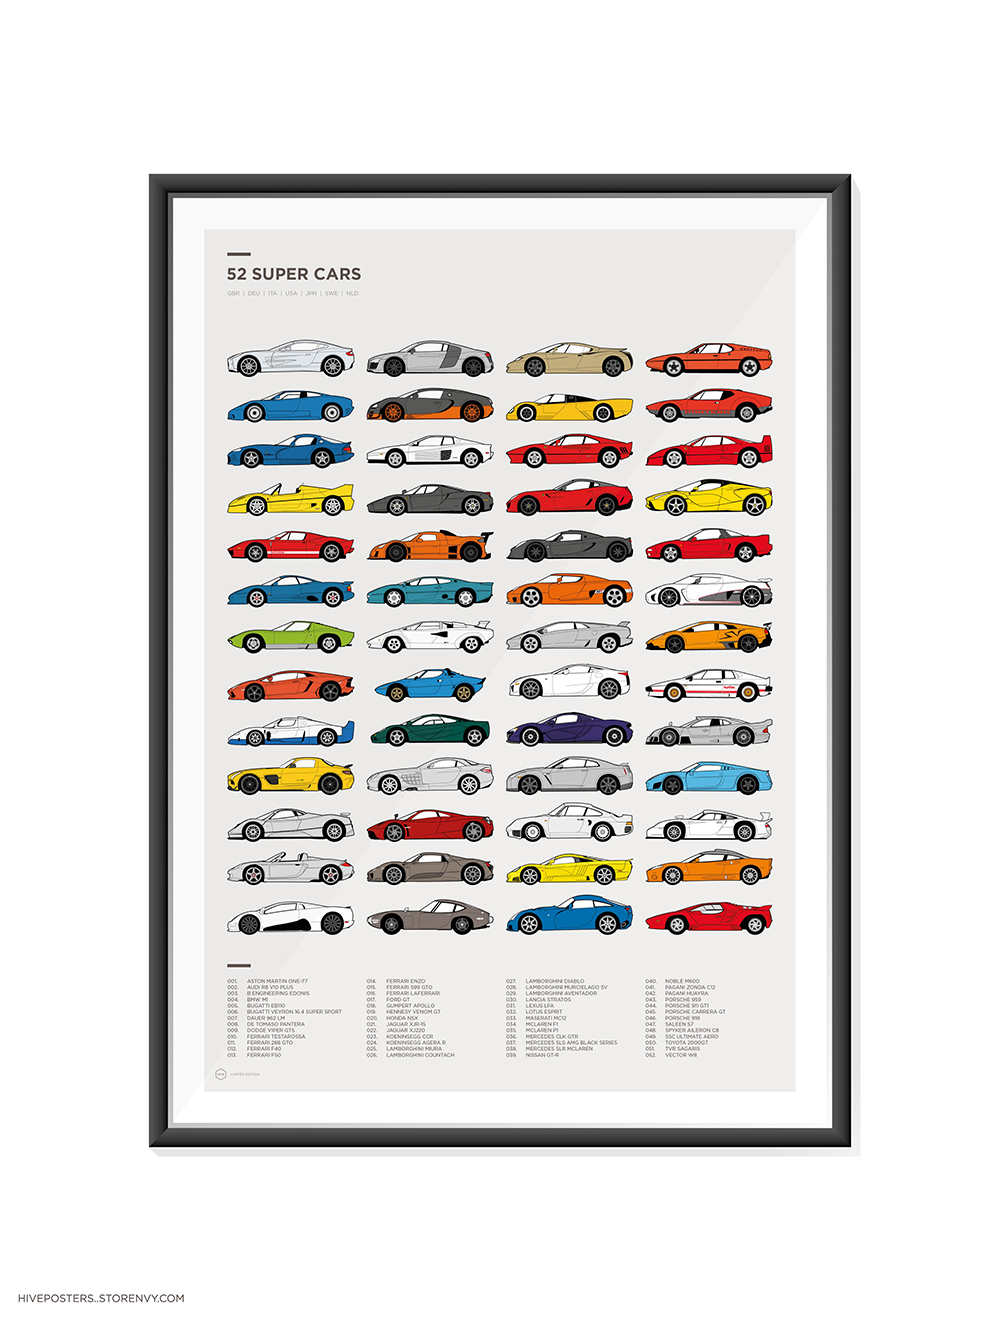 52 Great Supercars Poster By Hive Posters Choice Gear